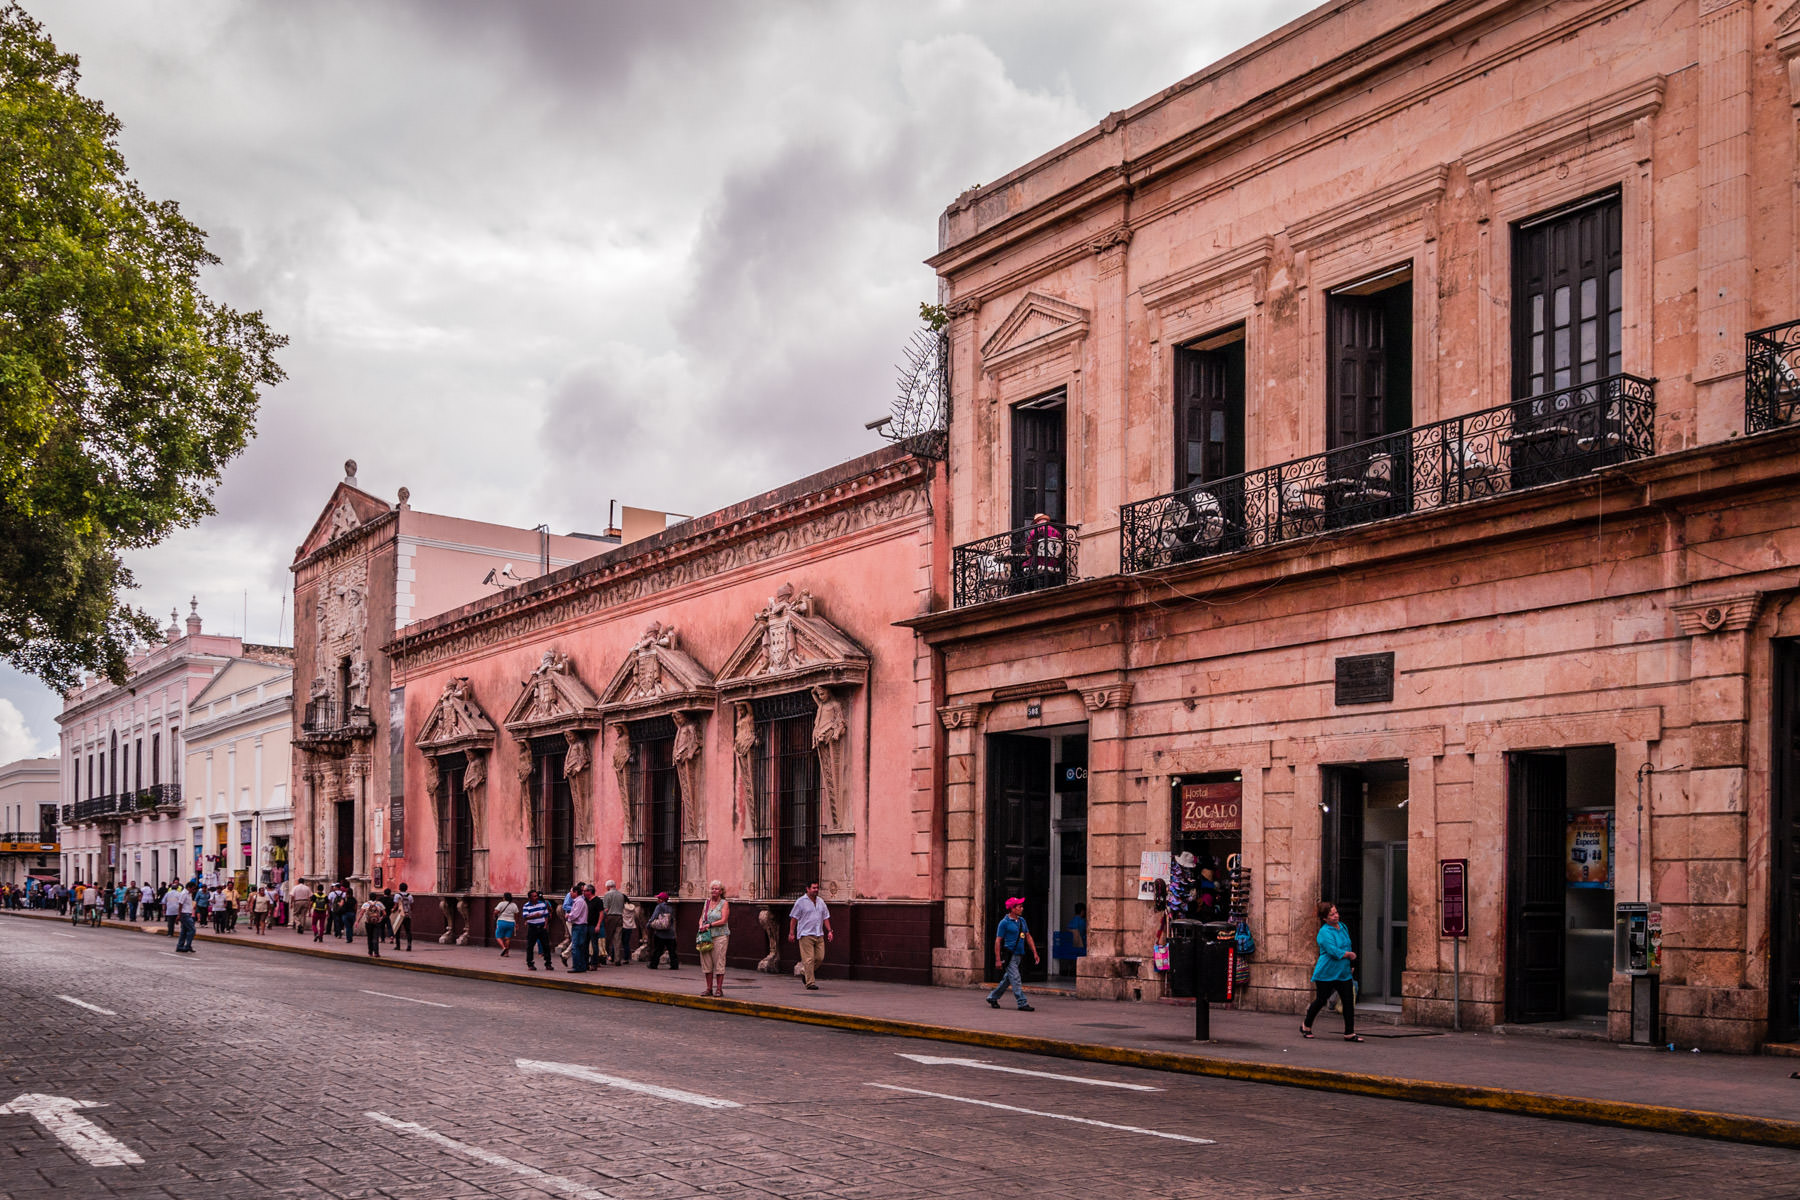 Pedestrians walk among the old buildings along Calle 63 in Mérida, Mexico.